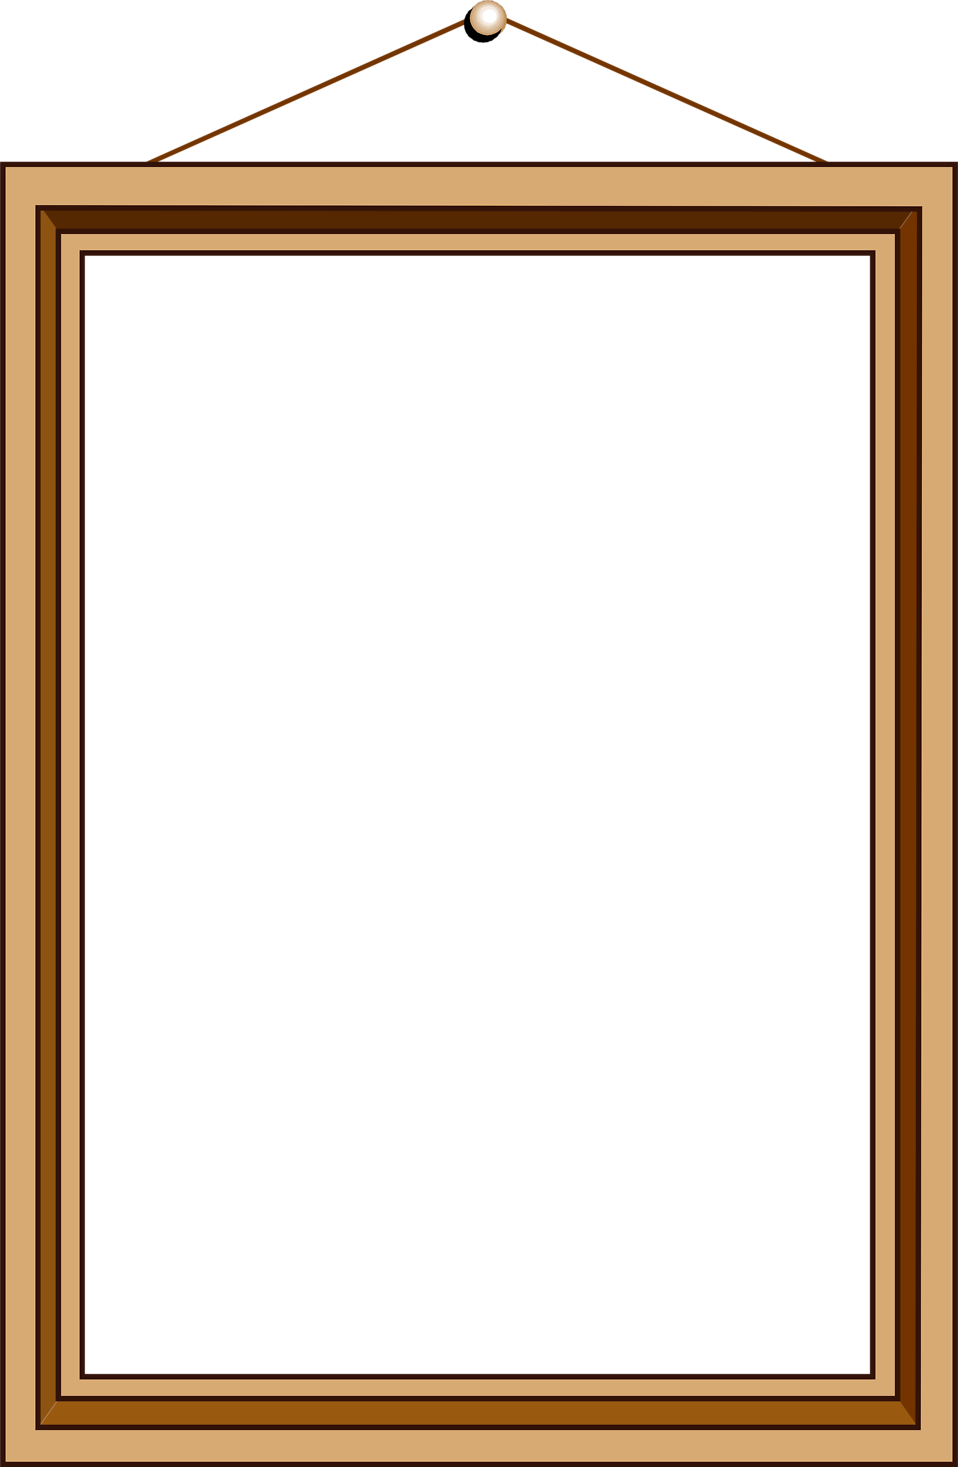 Empty picture frame clipart clipart kid -Empty picture frame clipart clipart kid 2-16